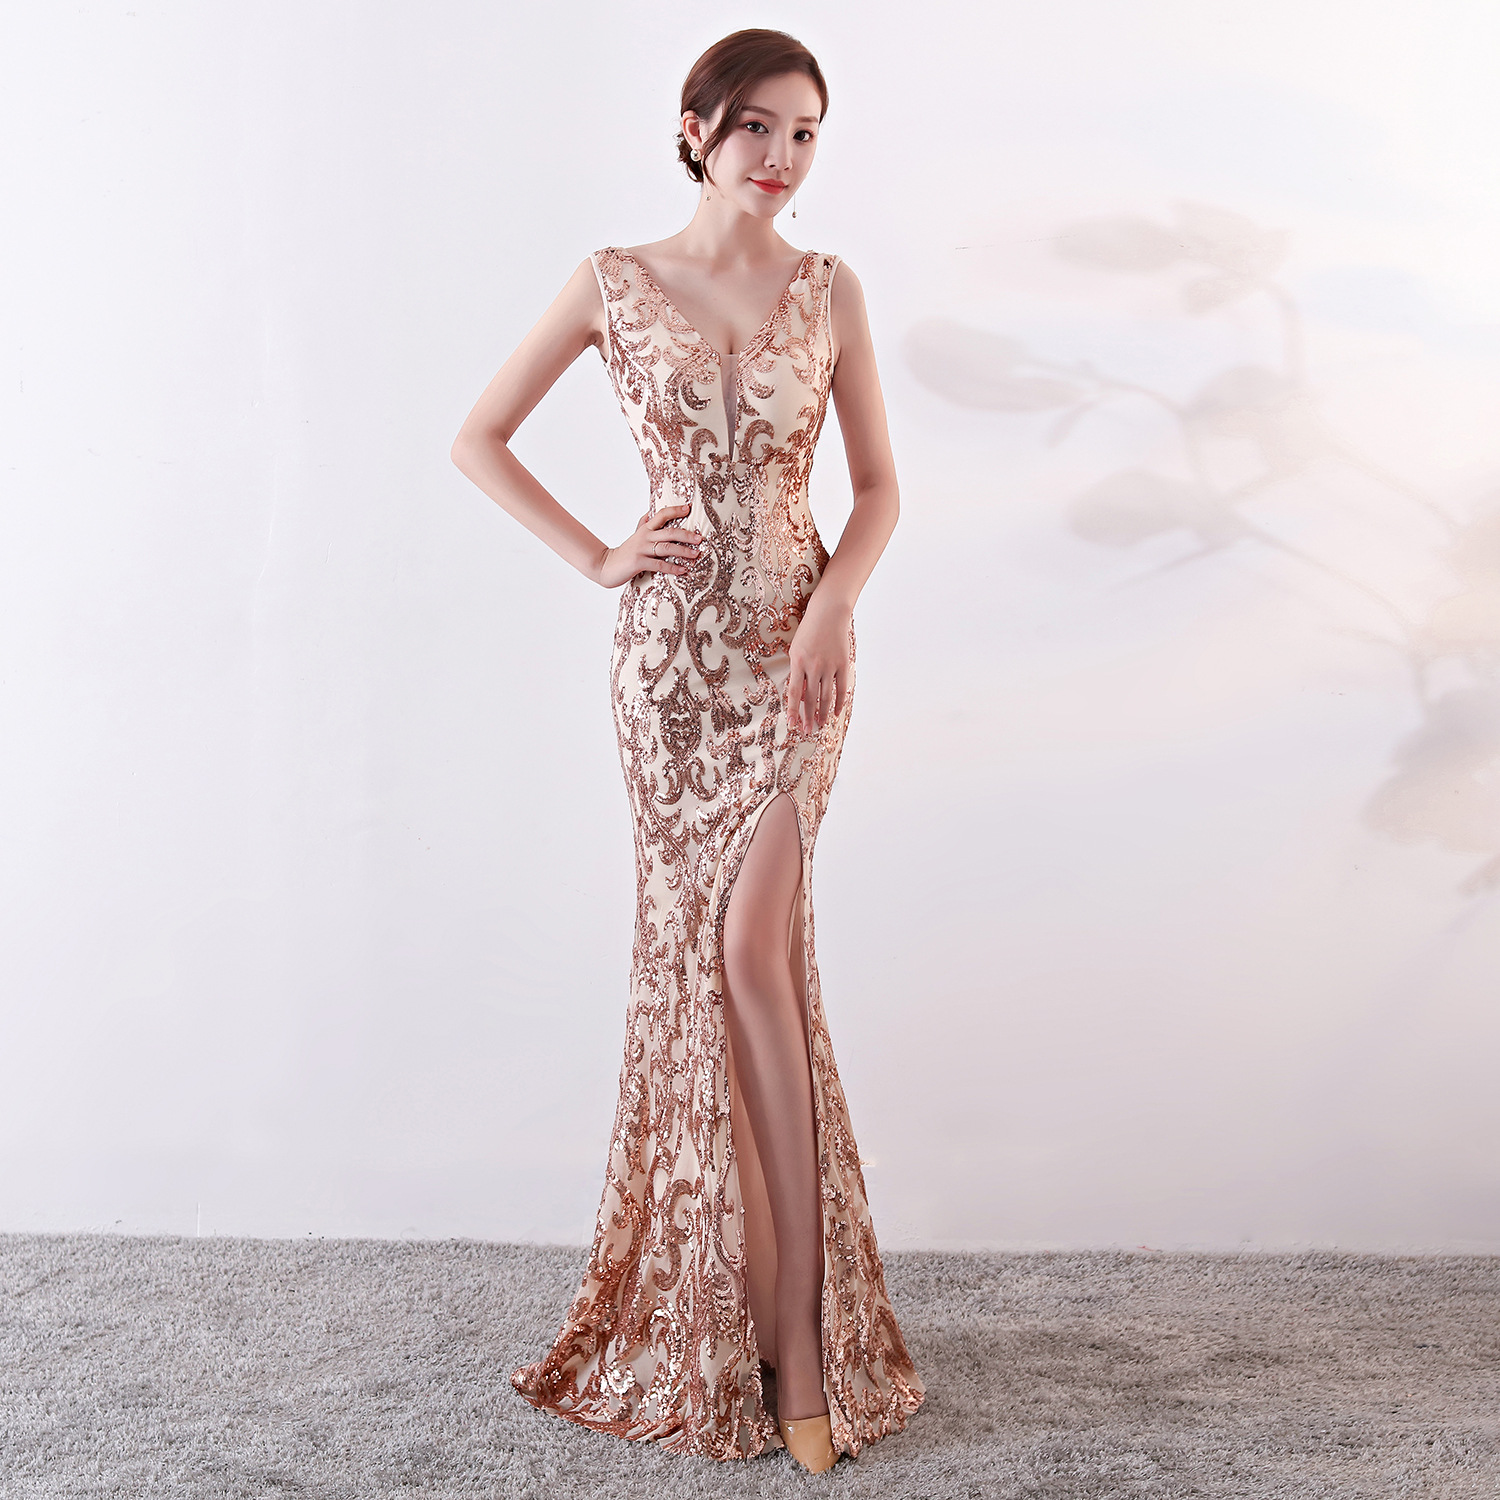 Corstory Elegant Women Fashion Rose Gold Sequin Sexy V Neck Sleeveless Side Slit Long Mermaid Slim Celebrity Club Party Dress XL